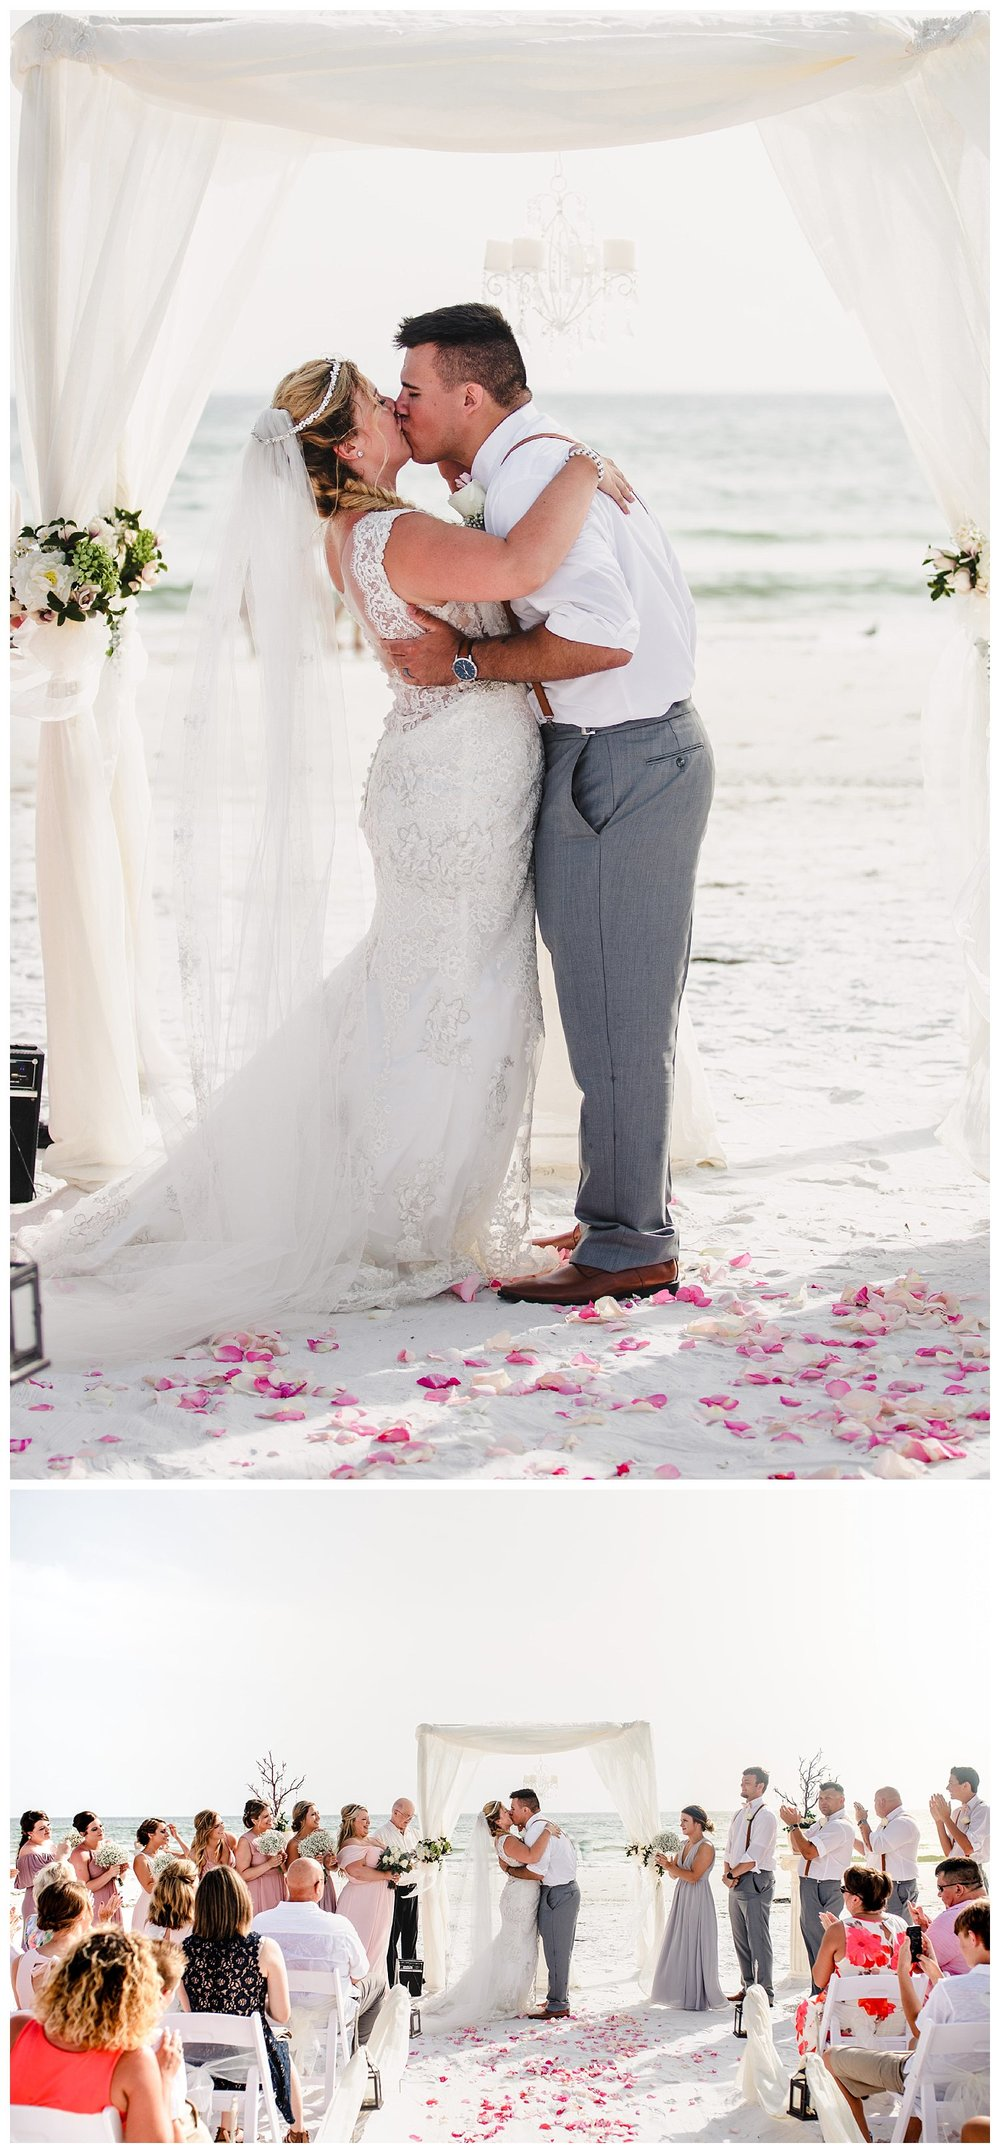 Kelsey_Diane_Photography_Destination_Wedding_Sarasota_Florida_Beach_Wedding_Alex_Austin_0652.jpg